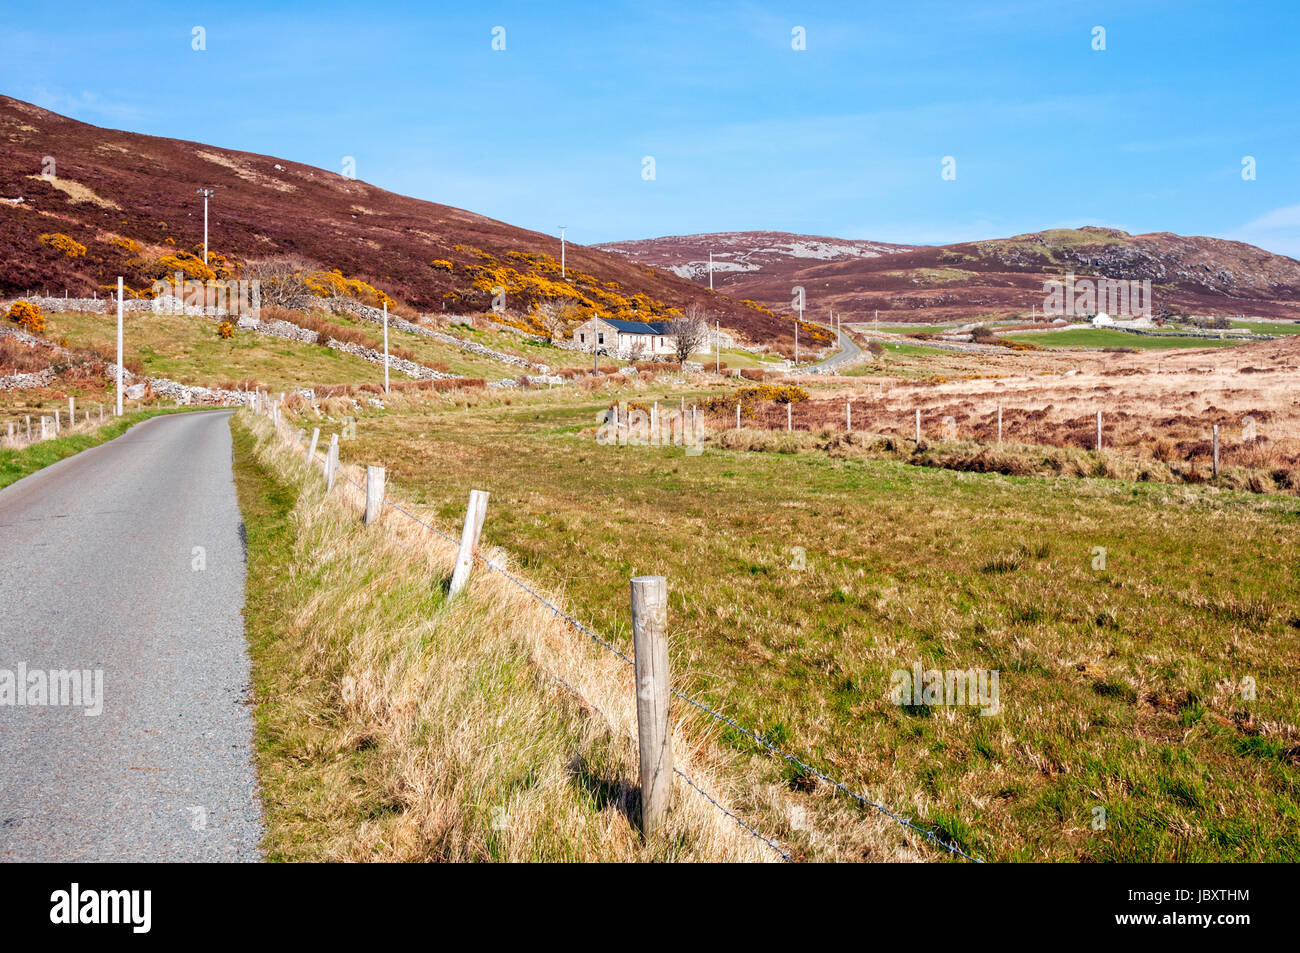 The road to Horn Head, near the town of Dunfanaghy, County Donegal, Ireland - Stock Image